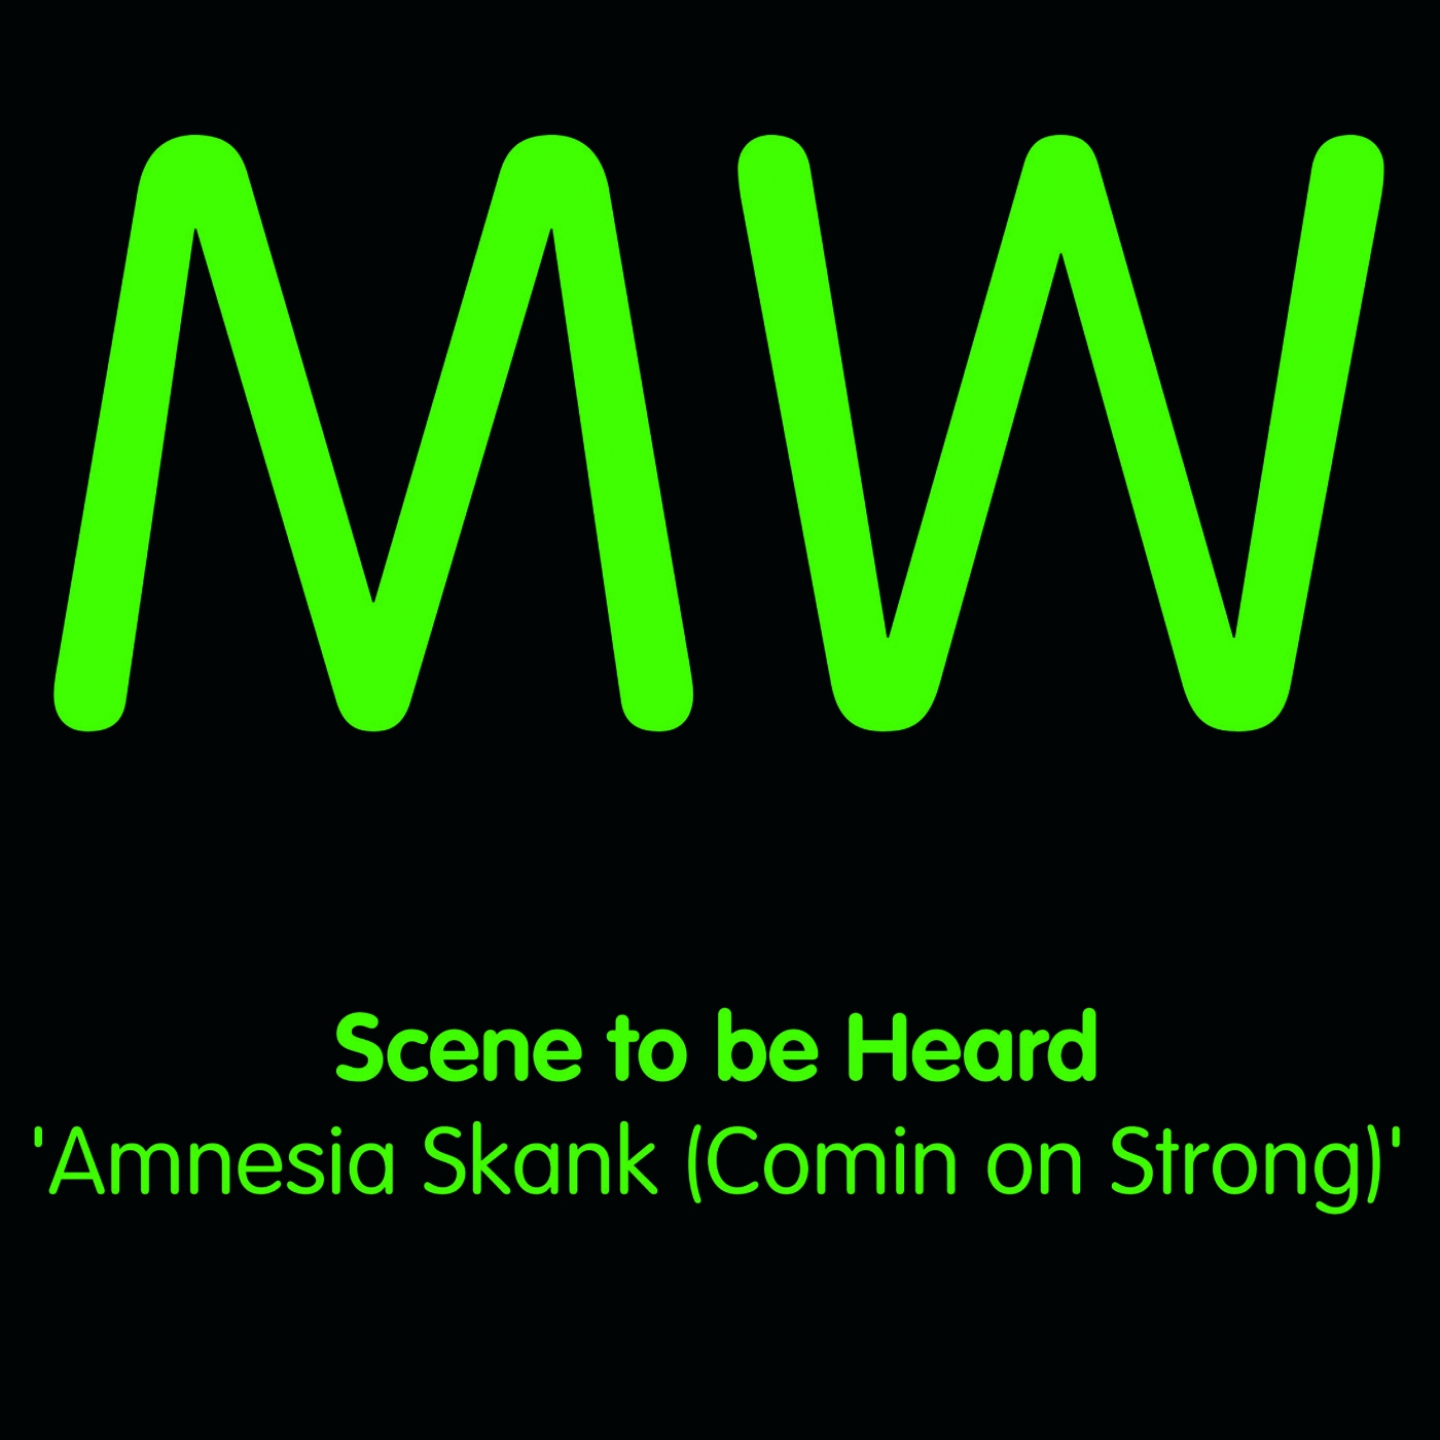 Amnesia Skank (Comin On Strong)